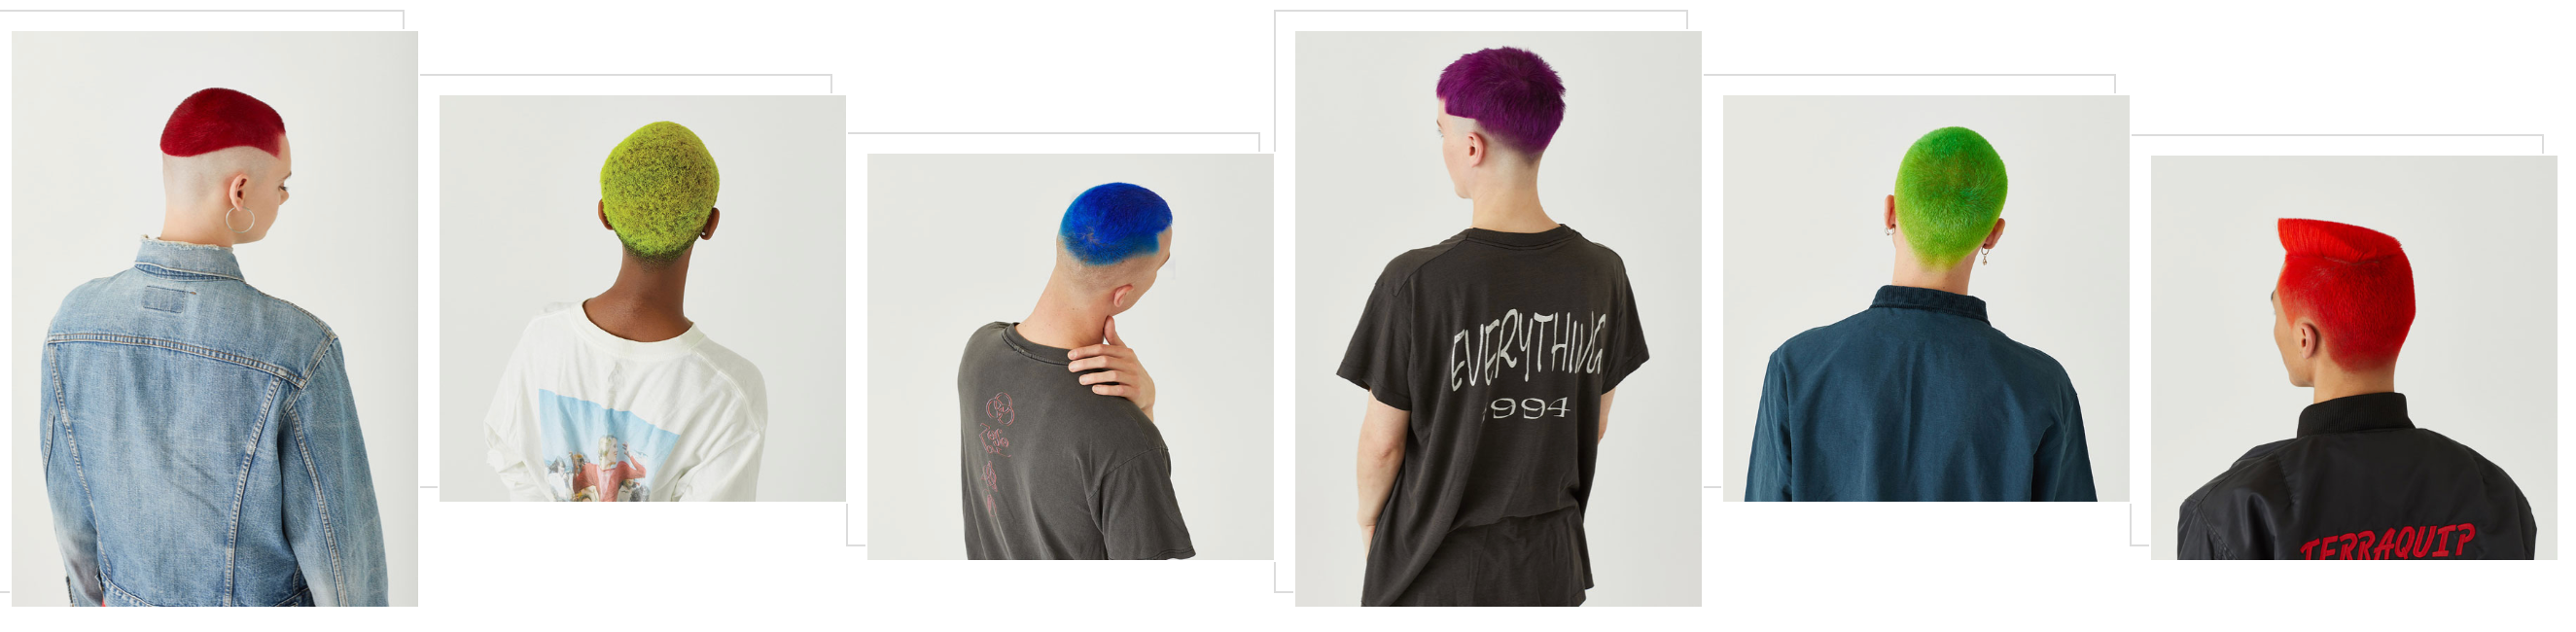 staino models with bright colourful hair